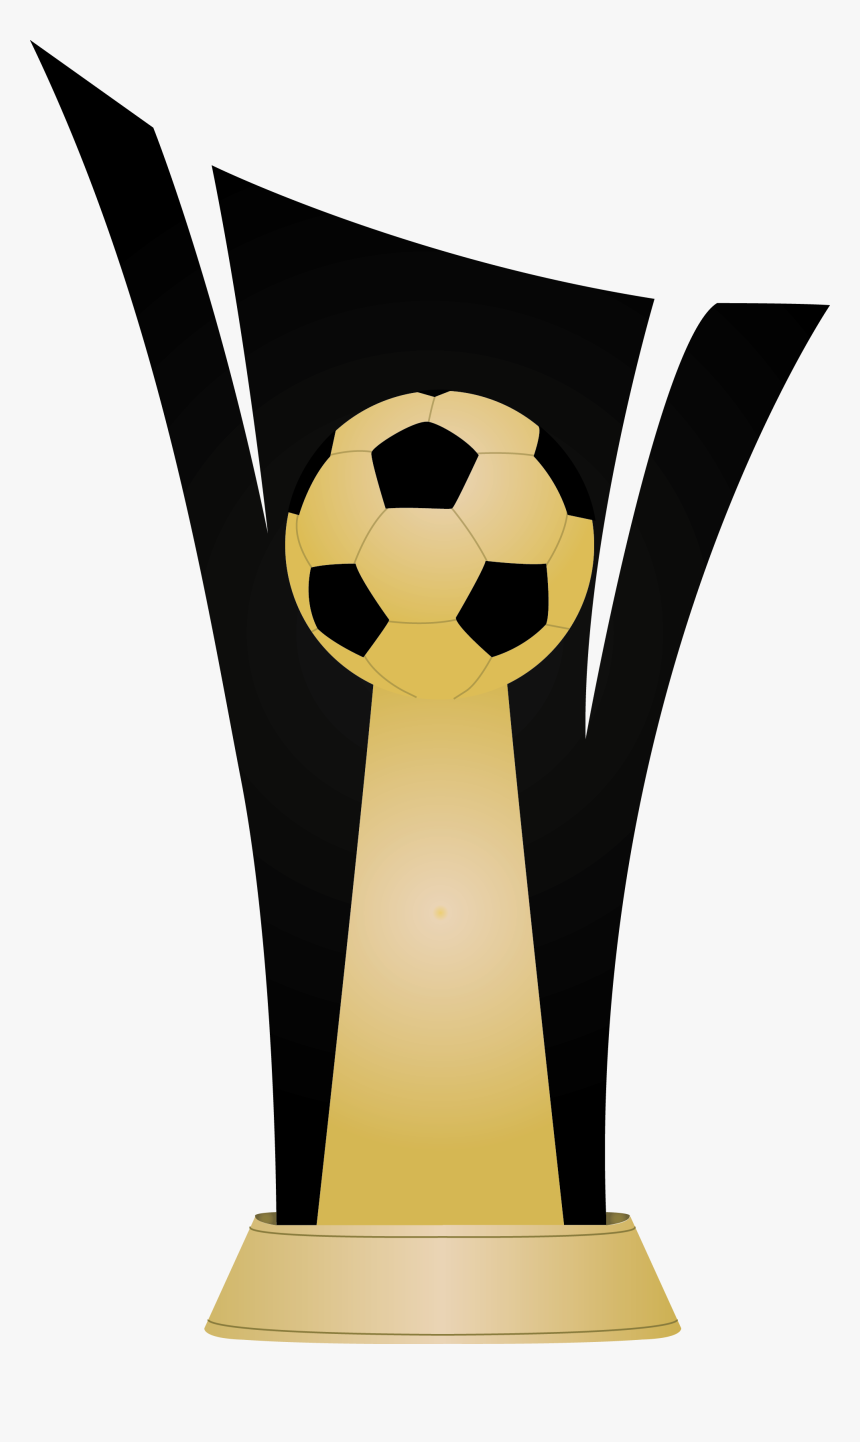 Concacaf Champions League Png, Transparent Png, Free Download